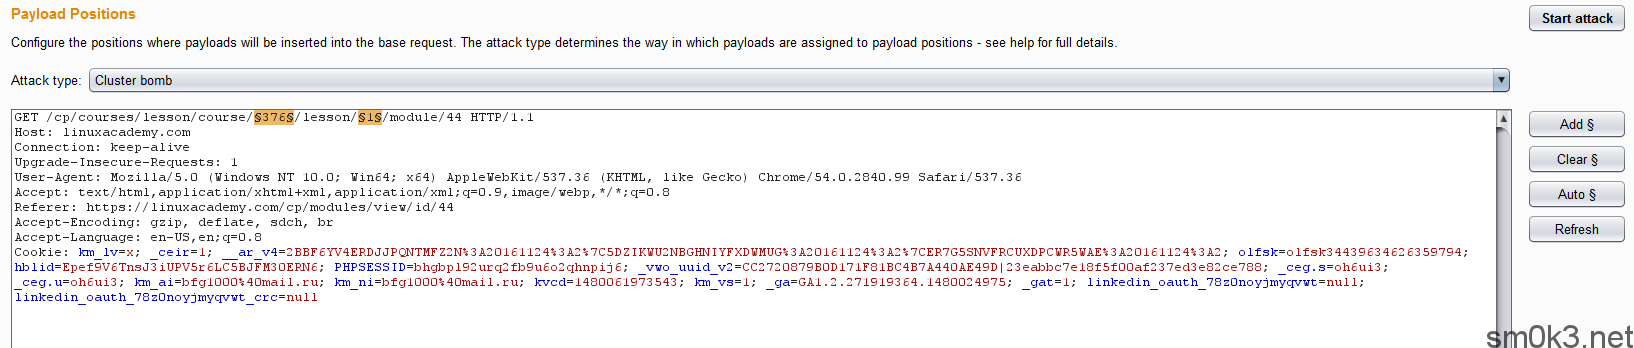 payload_position